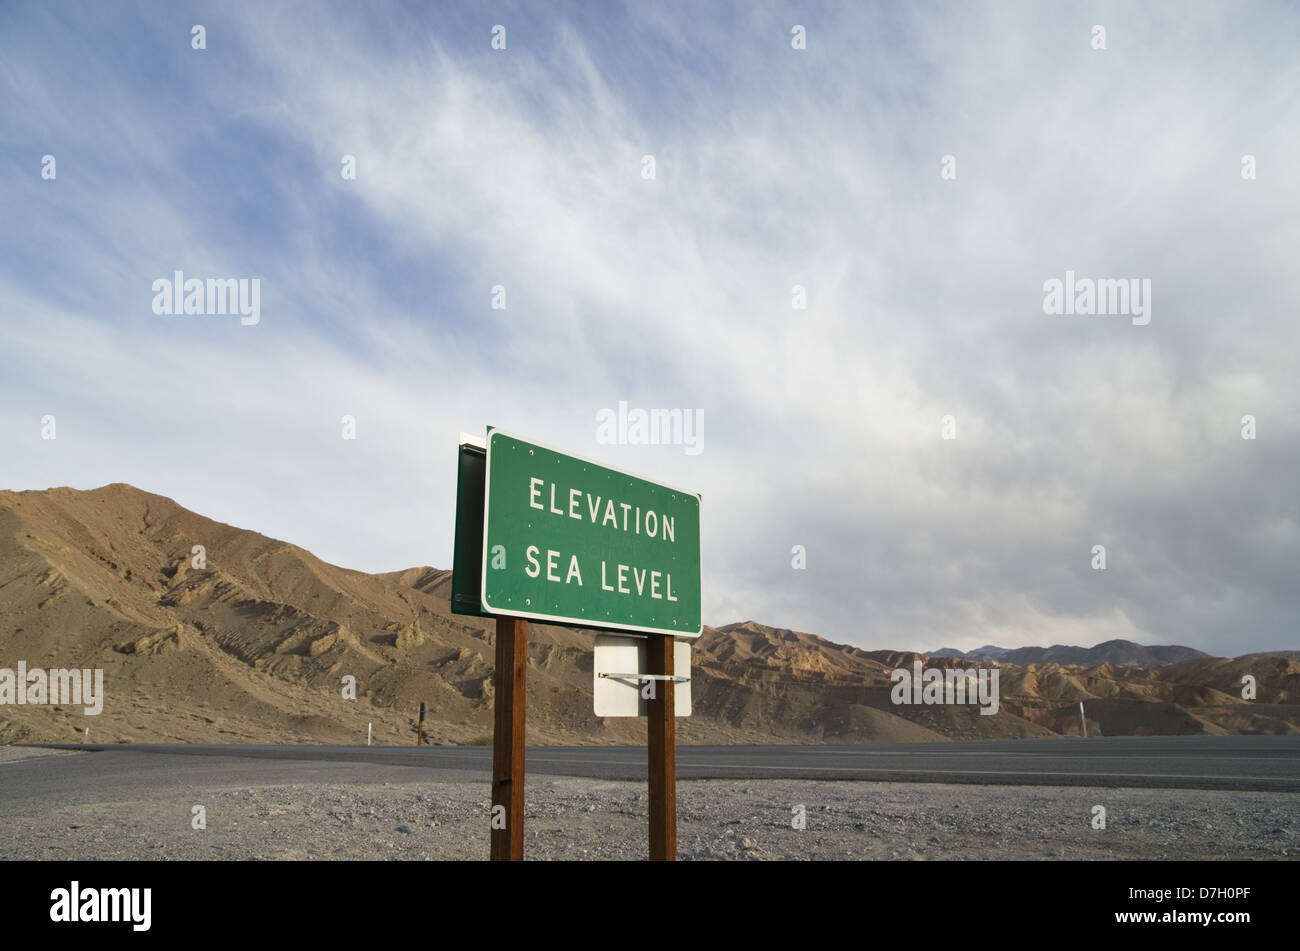 elevation sea level sign in Death Valley National Park - Stock Image